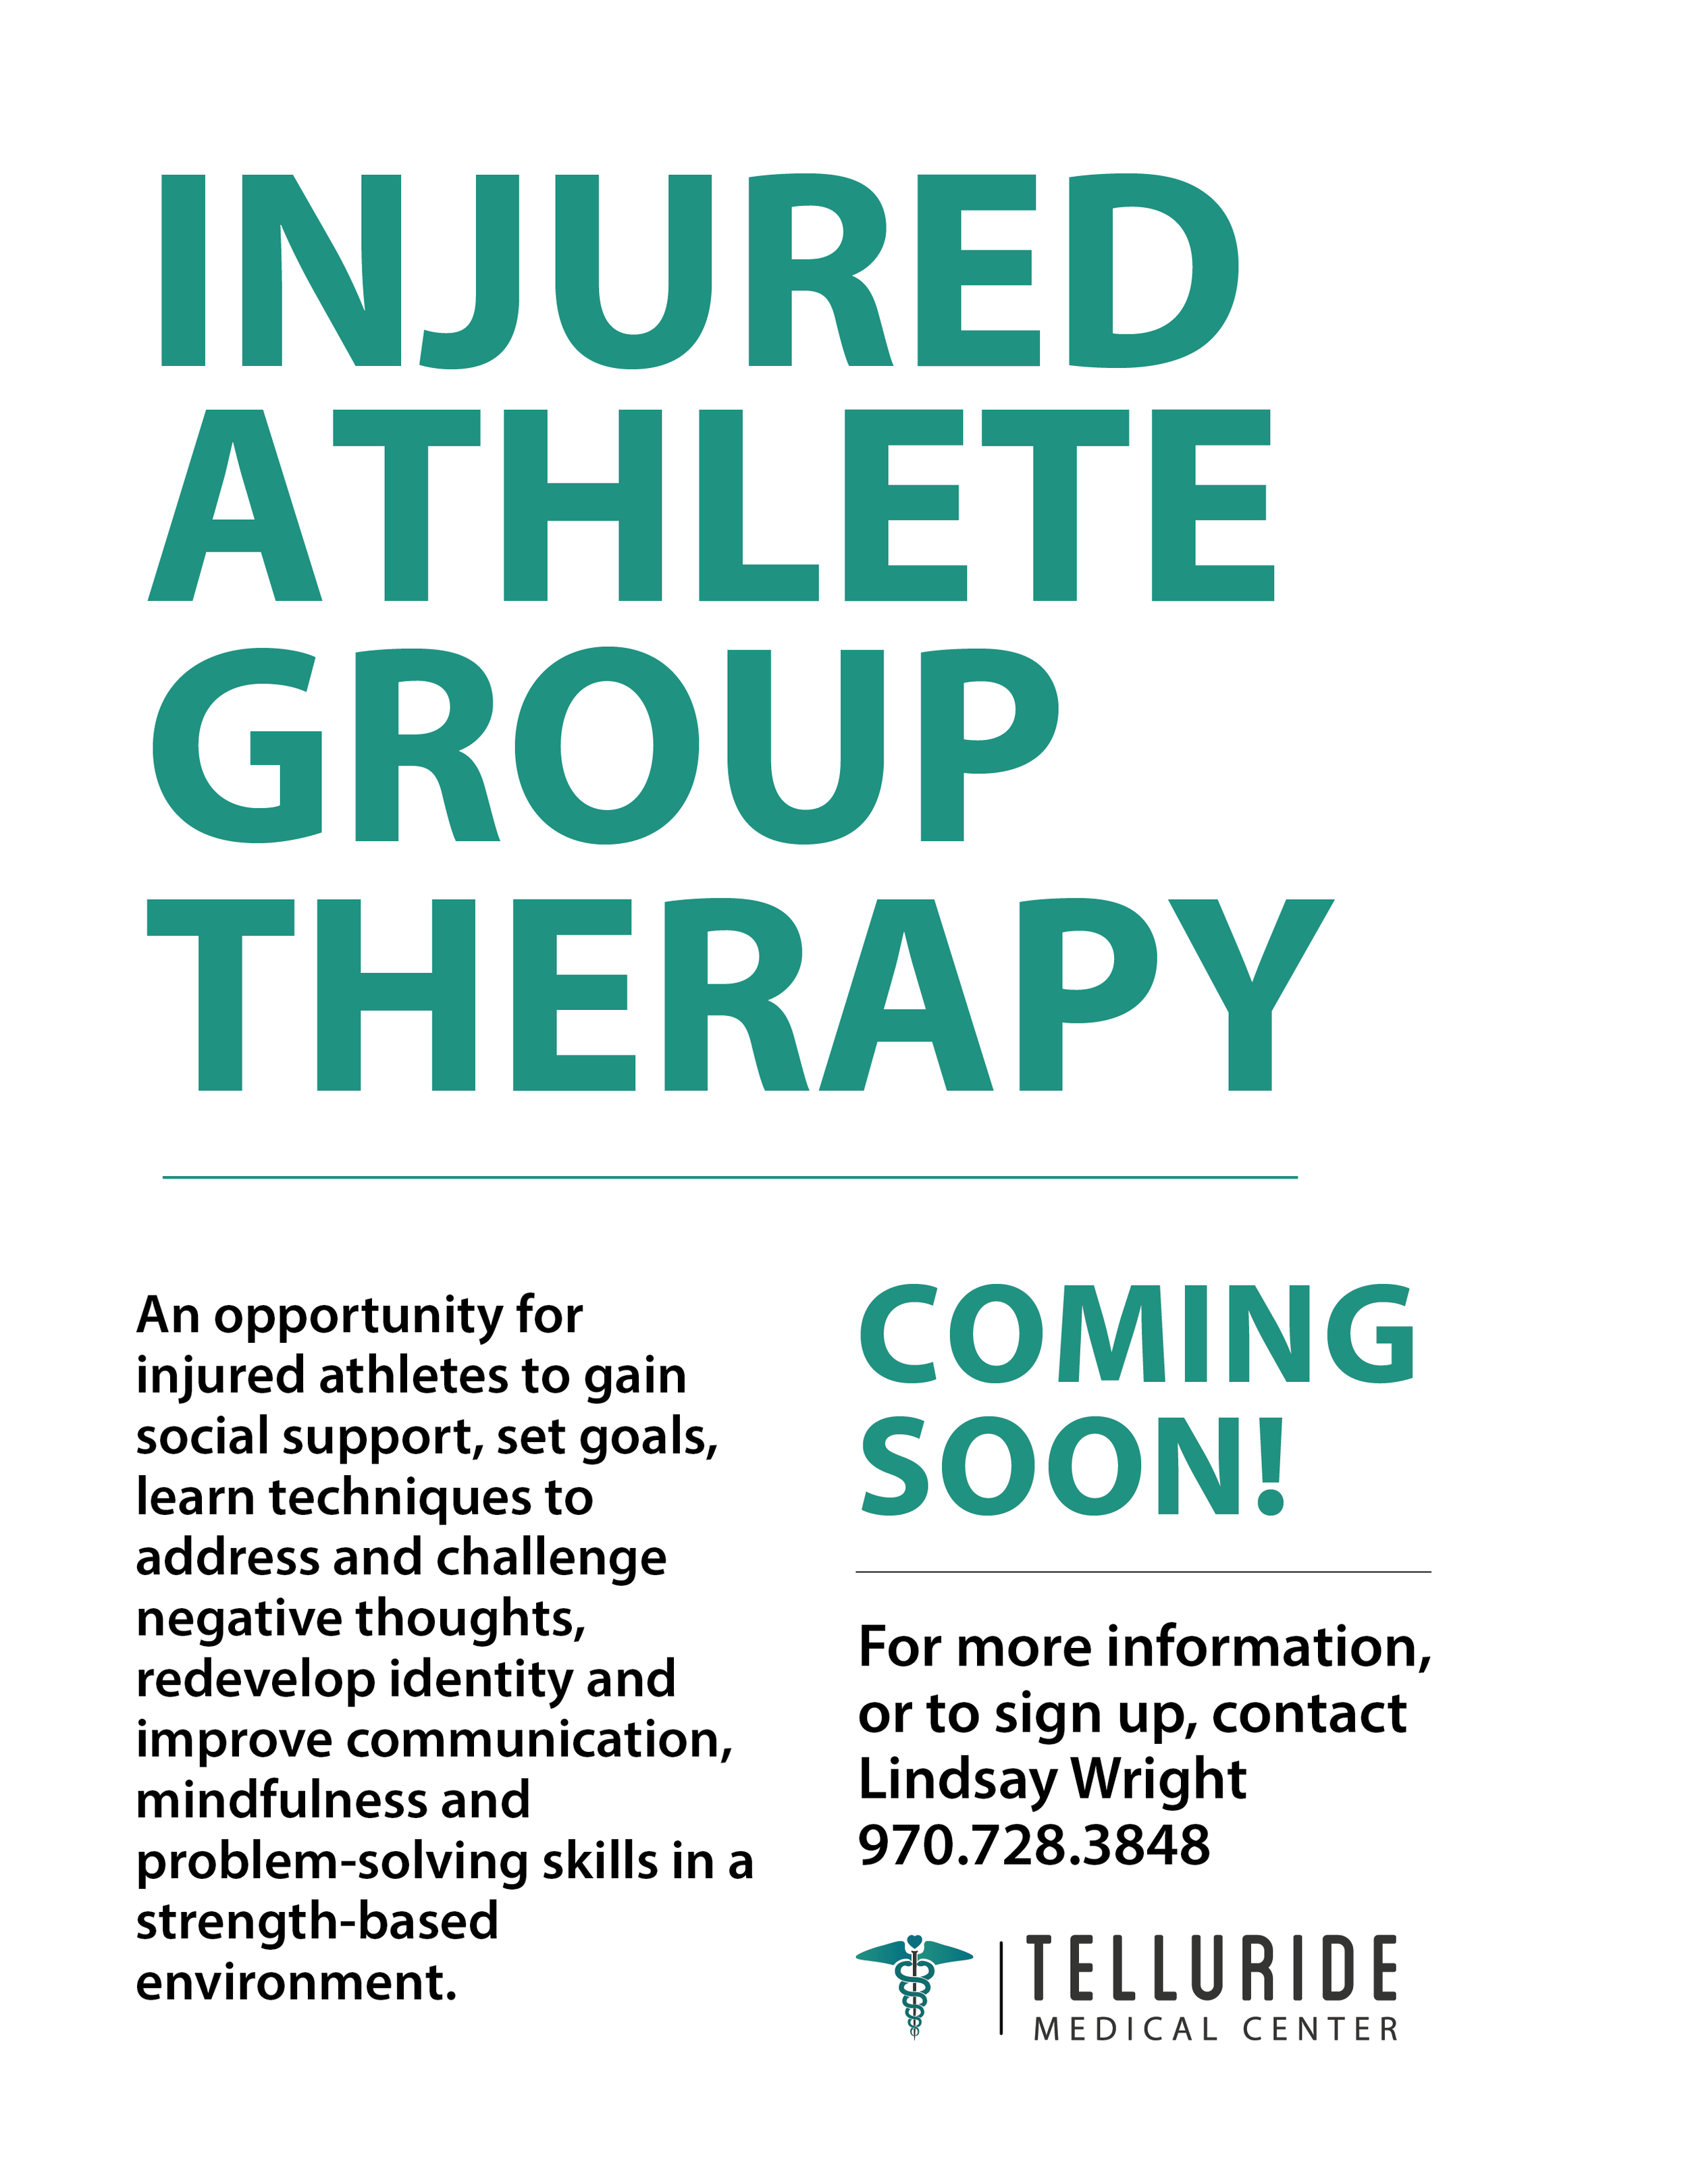 Injured Athlete Support Group Therapy Telluride